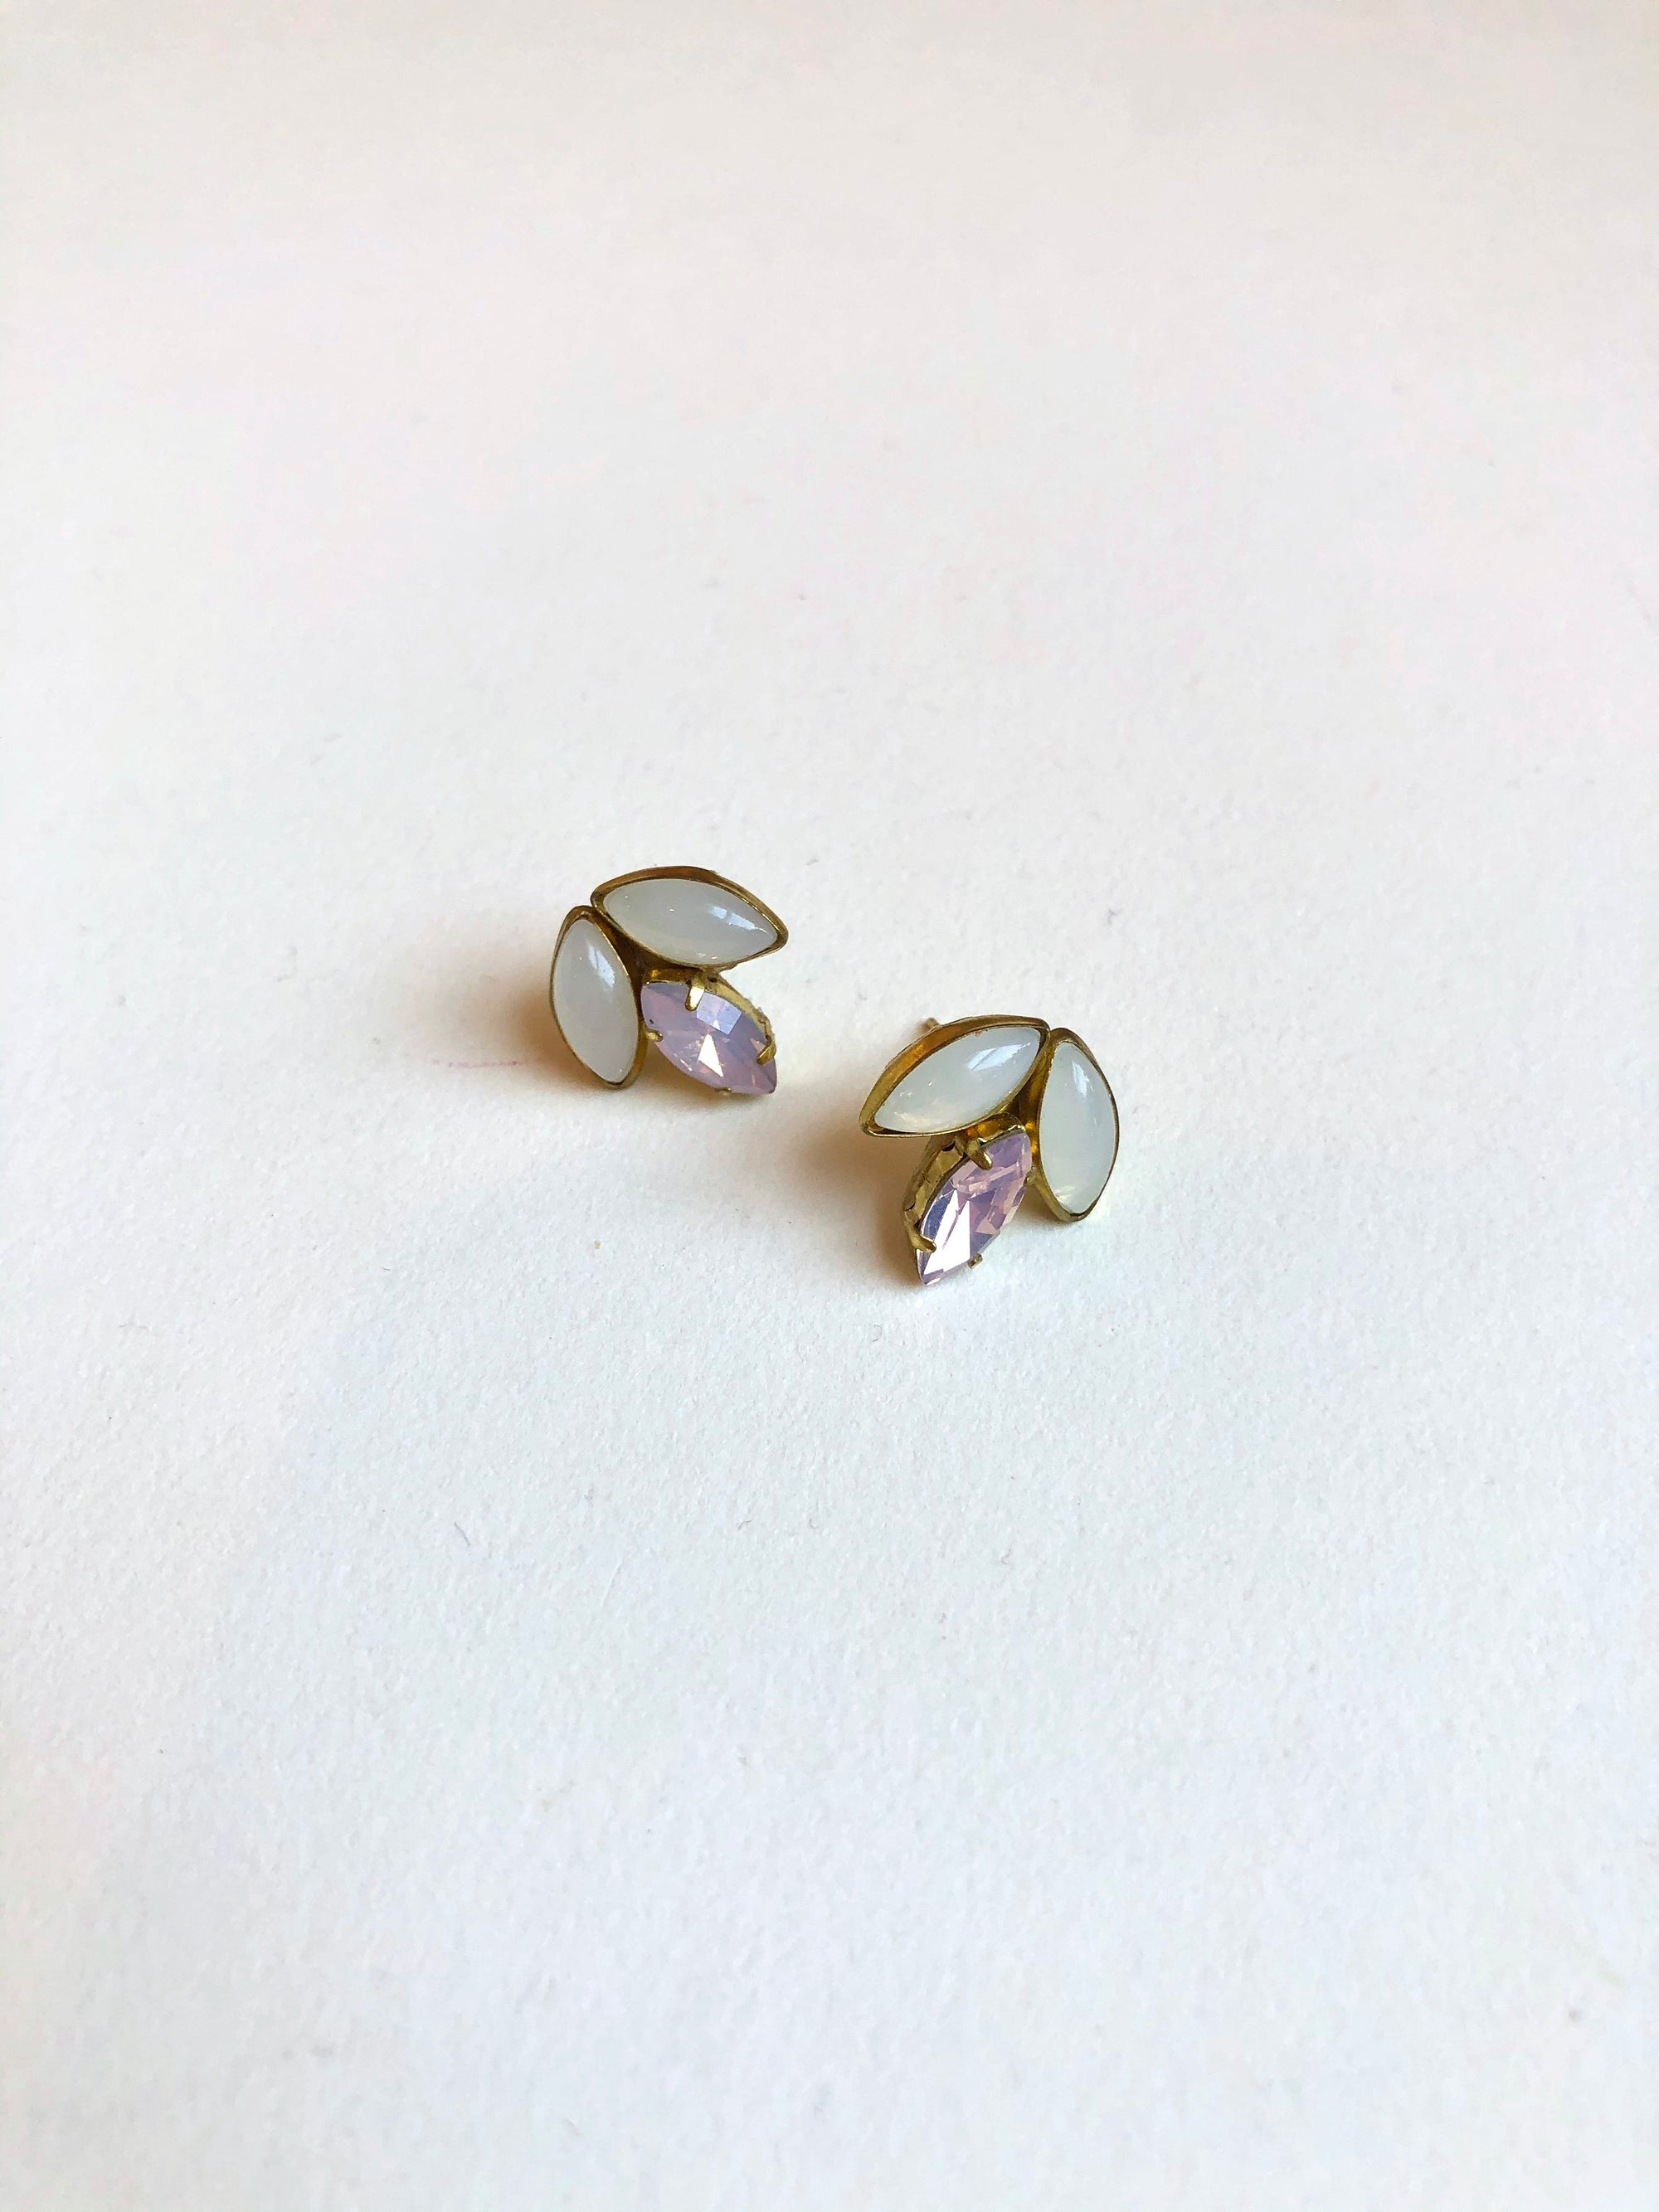 Erin earrings in BLUSH color // NEARLY NEW